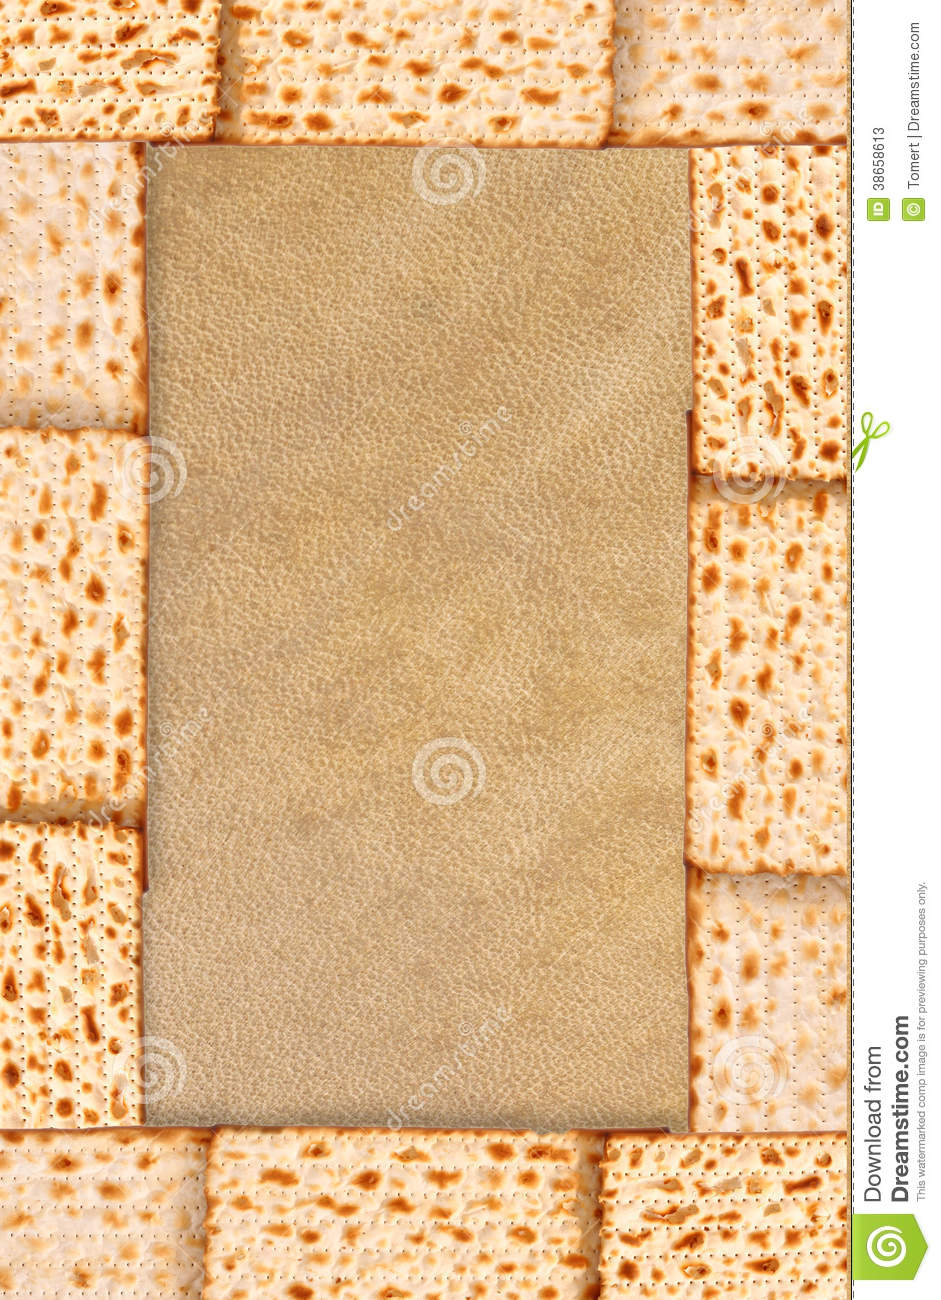 Passover background matzoh (jewish passover bread).